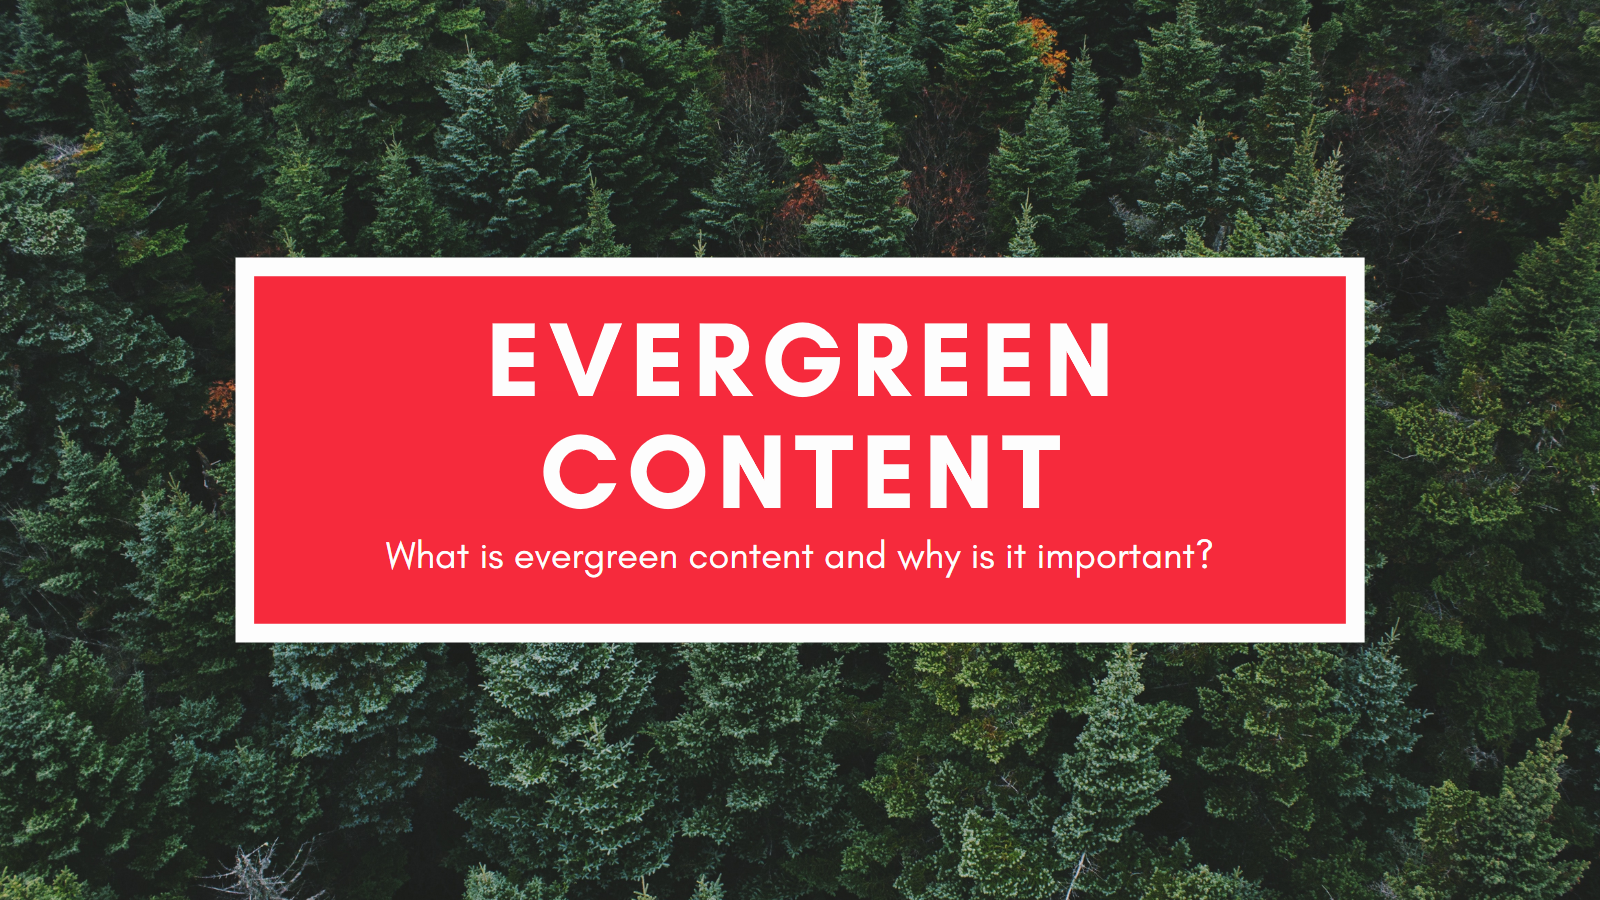 evergreen content, how to find evergreen content, importance of evergreen content, how to create evergreen content, evergreen